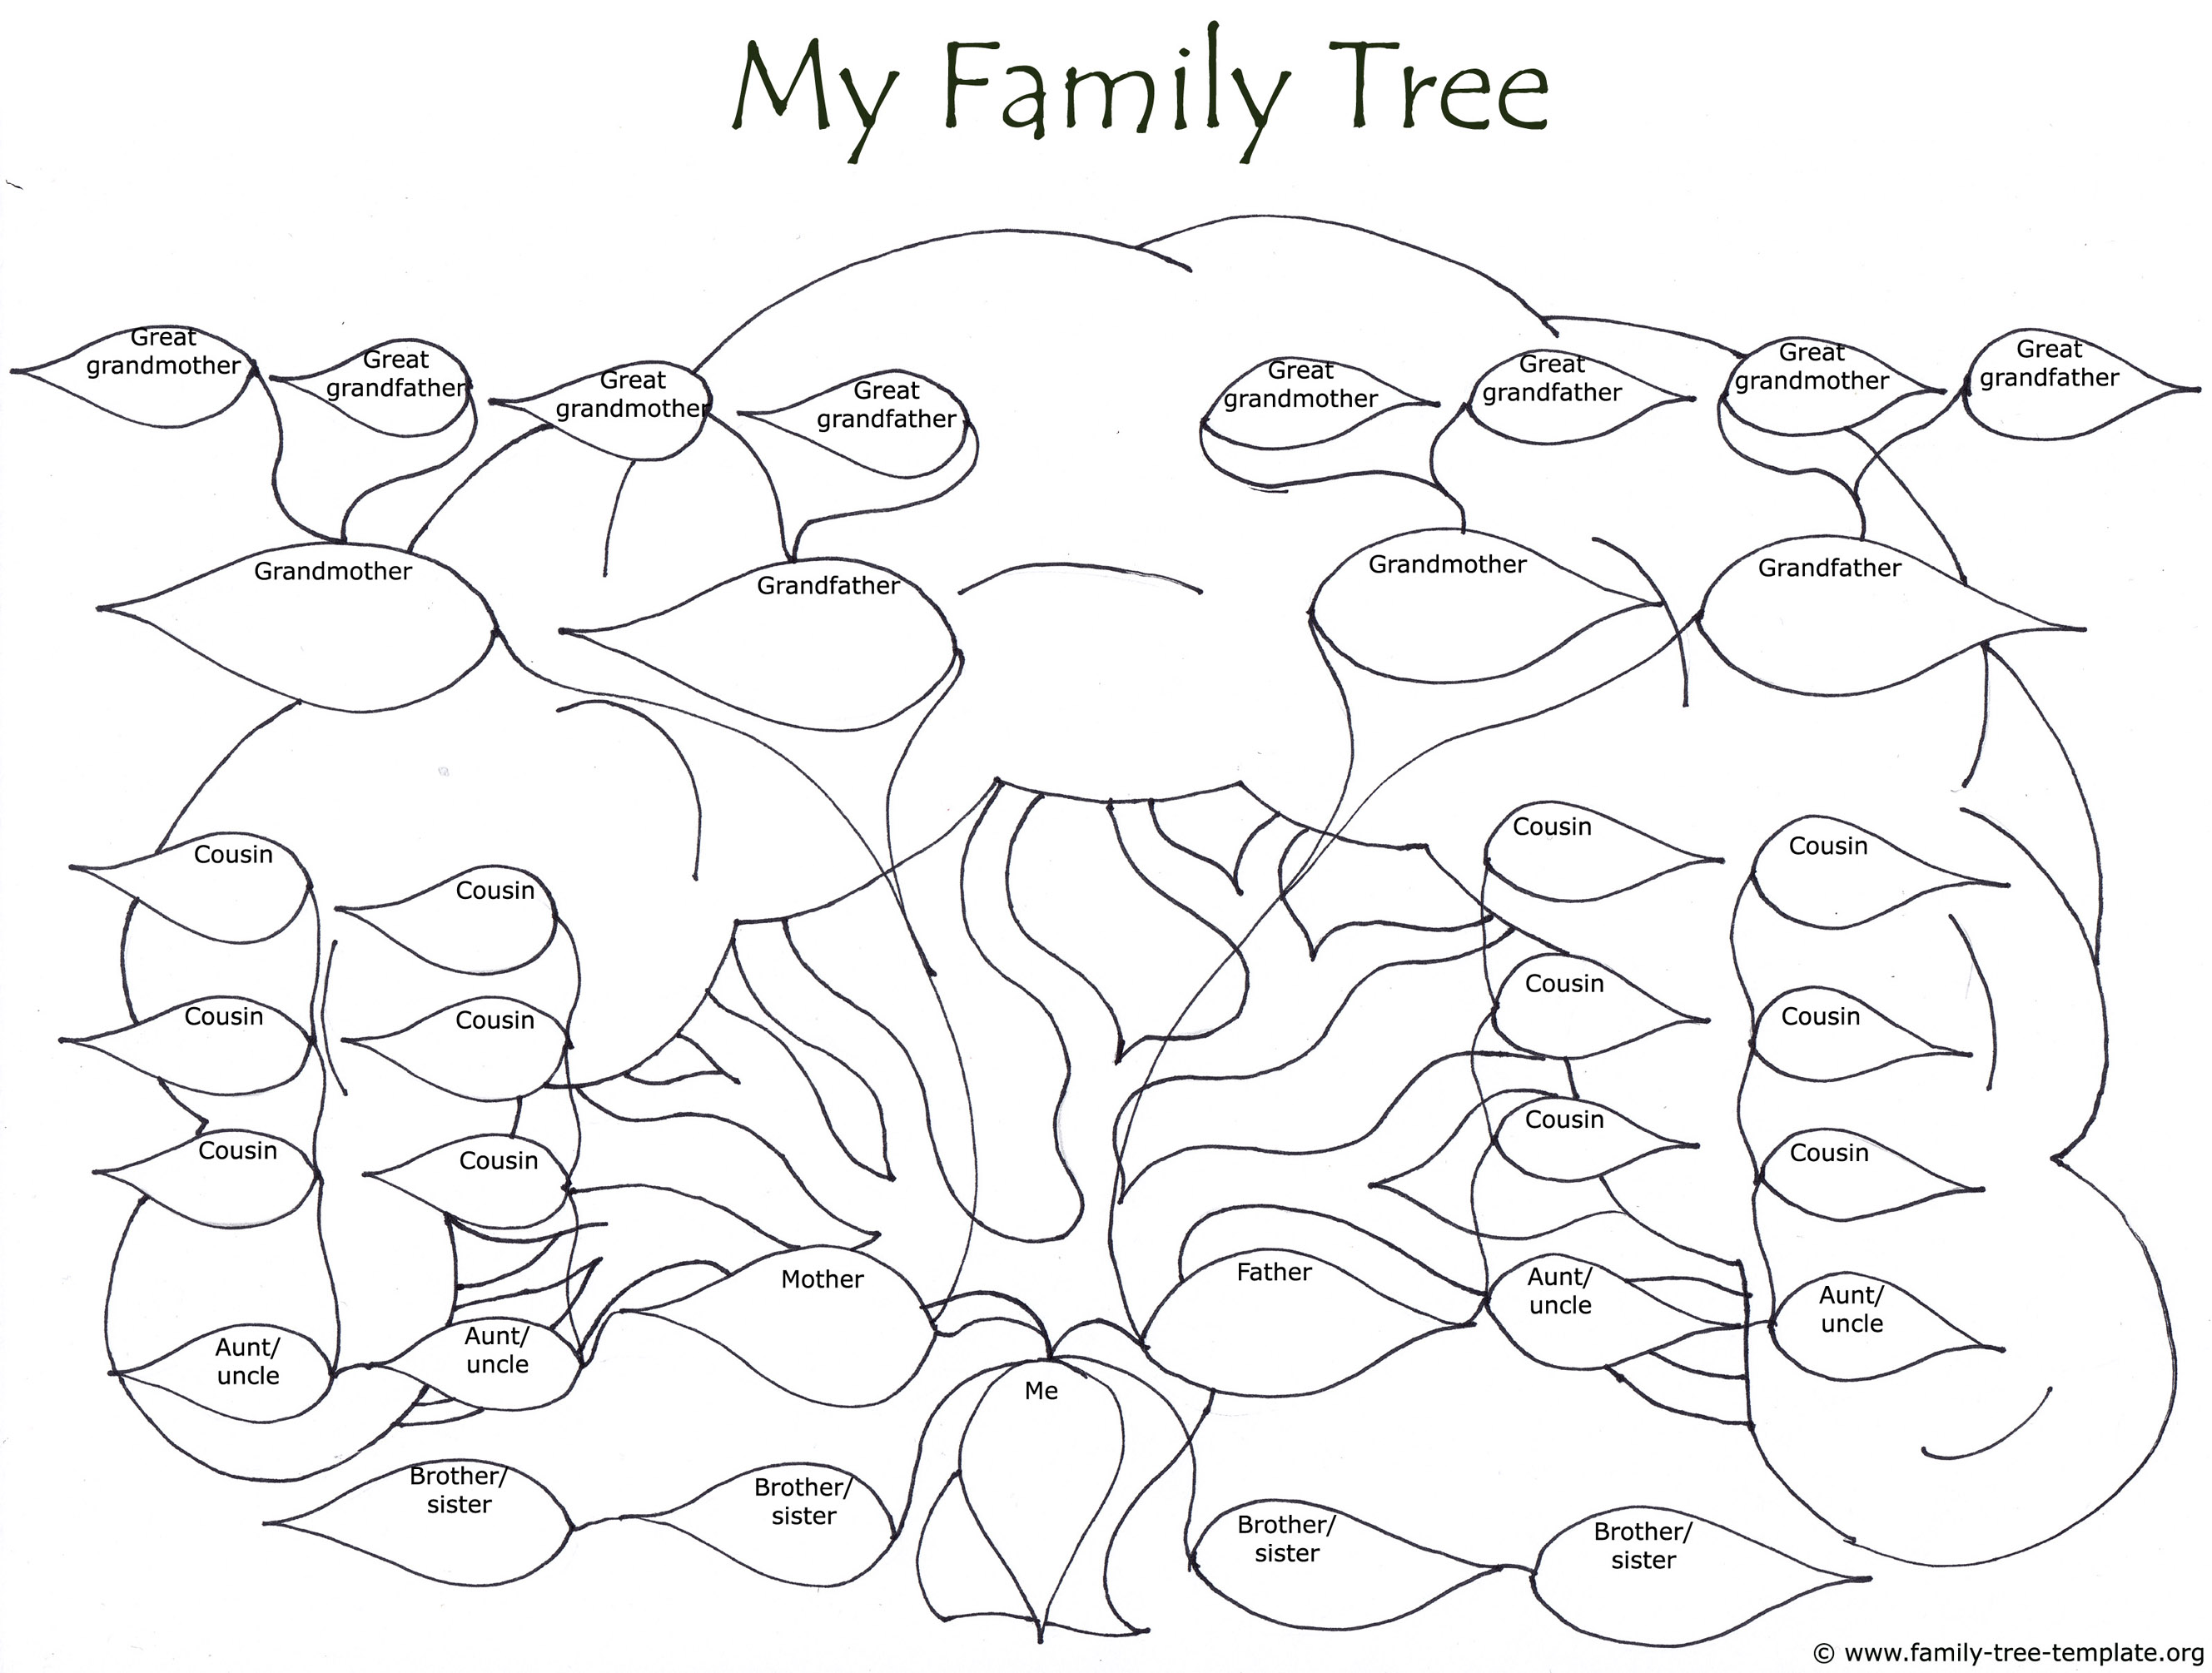 Free family tree templates using free ancestry information for Genealogy templates for family trees